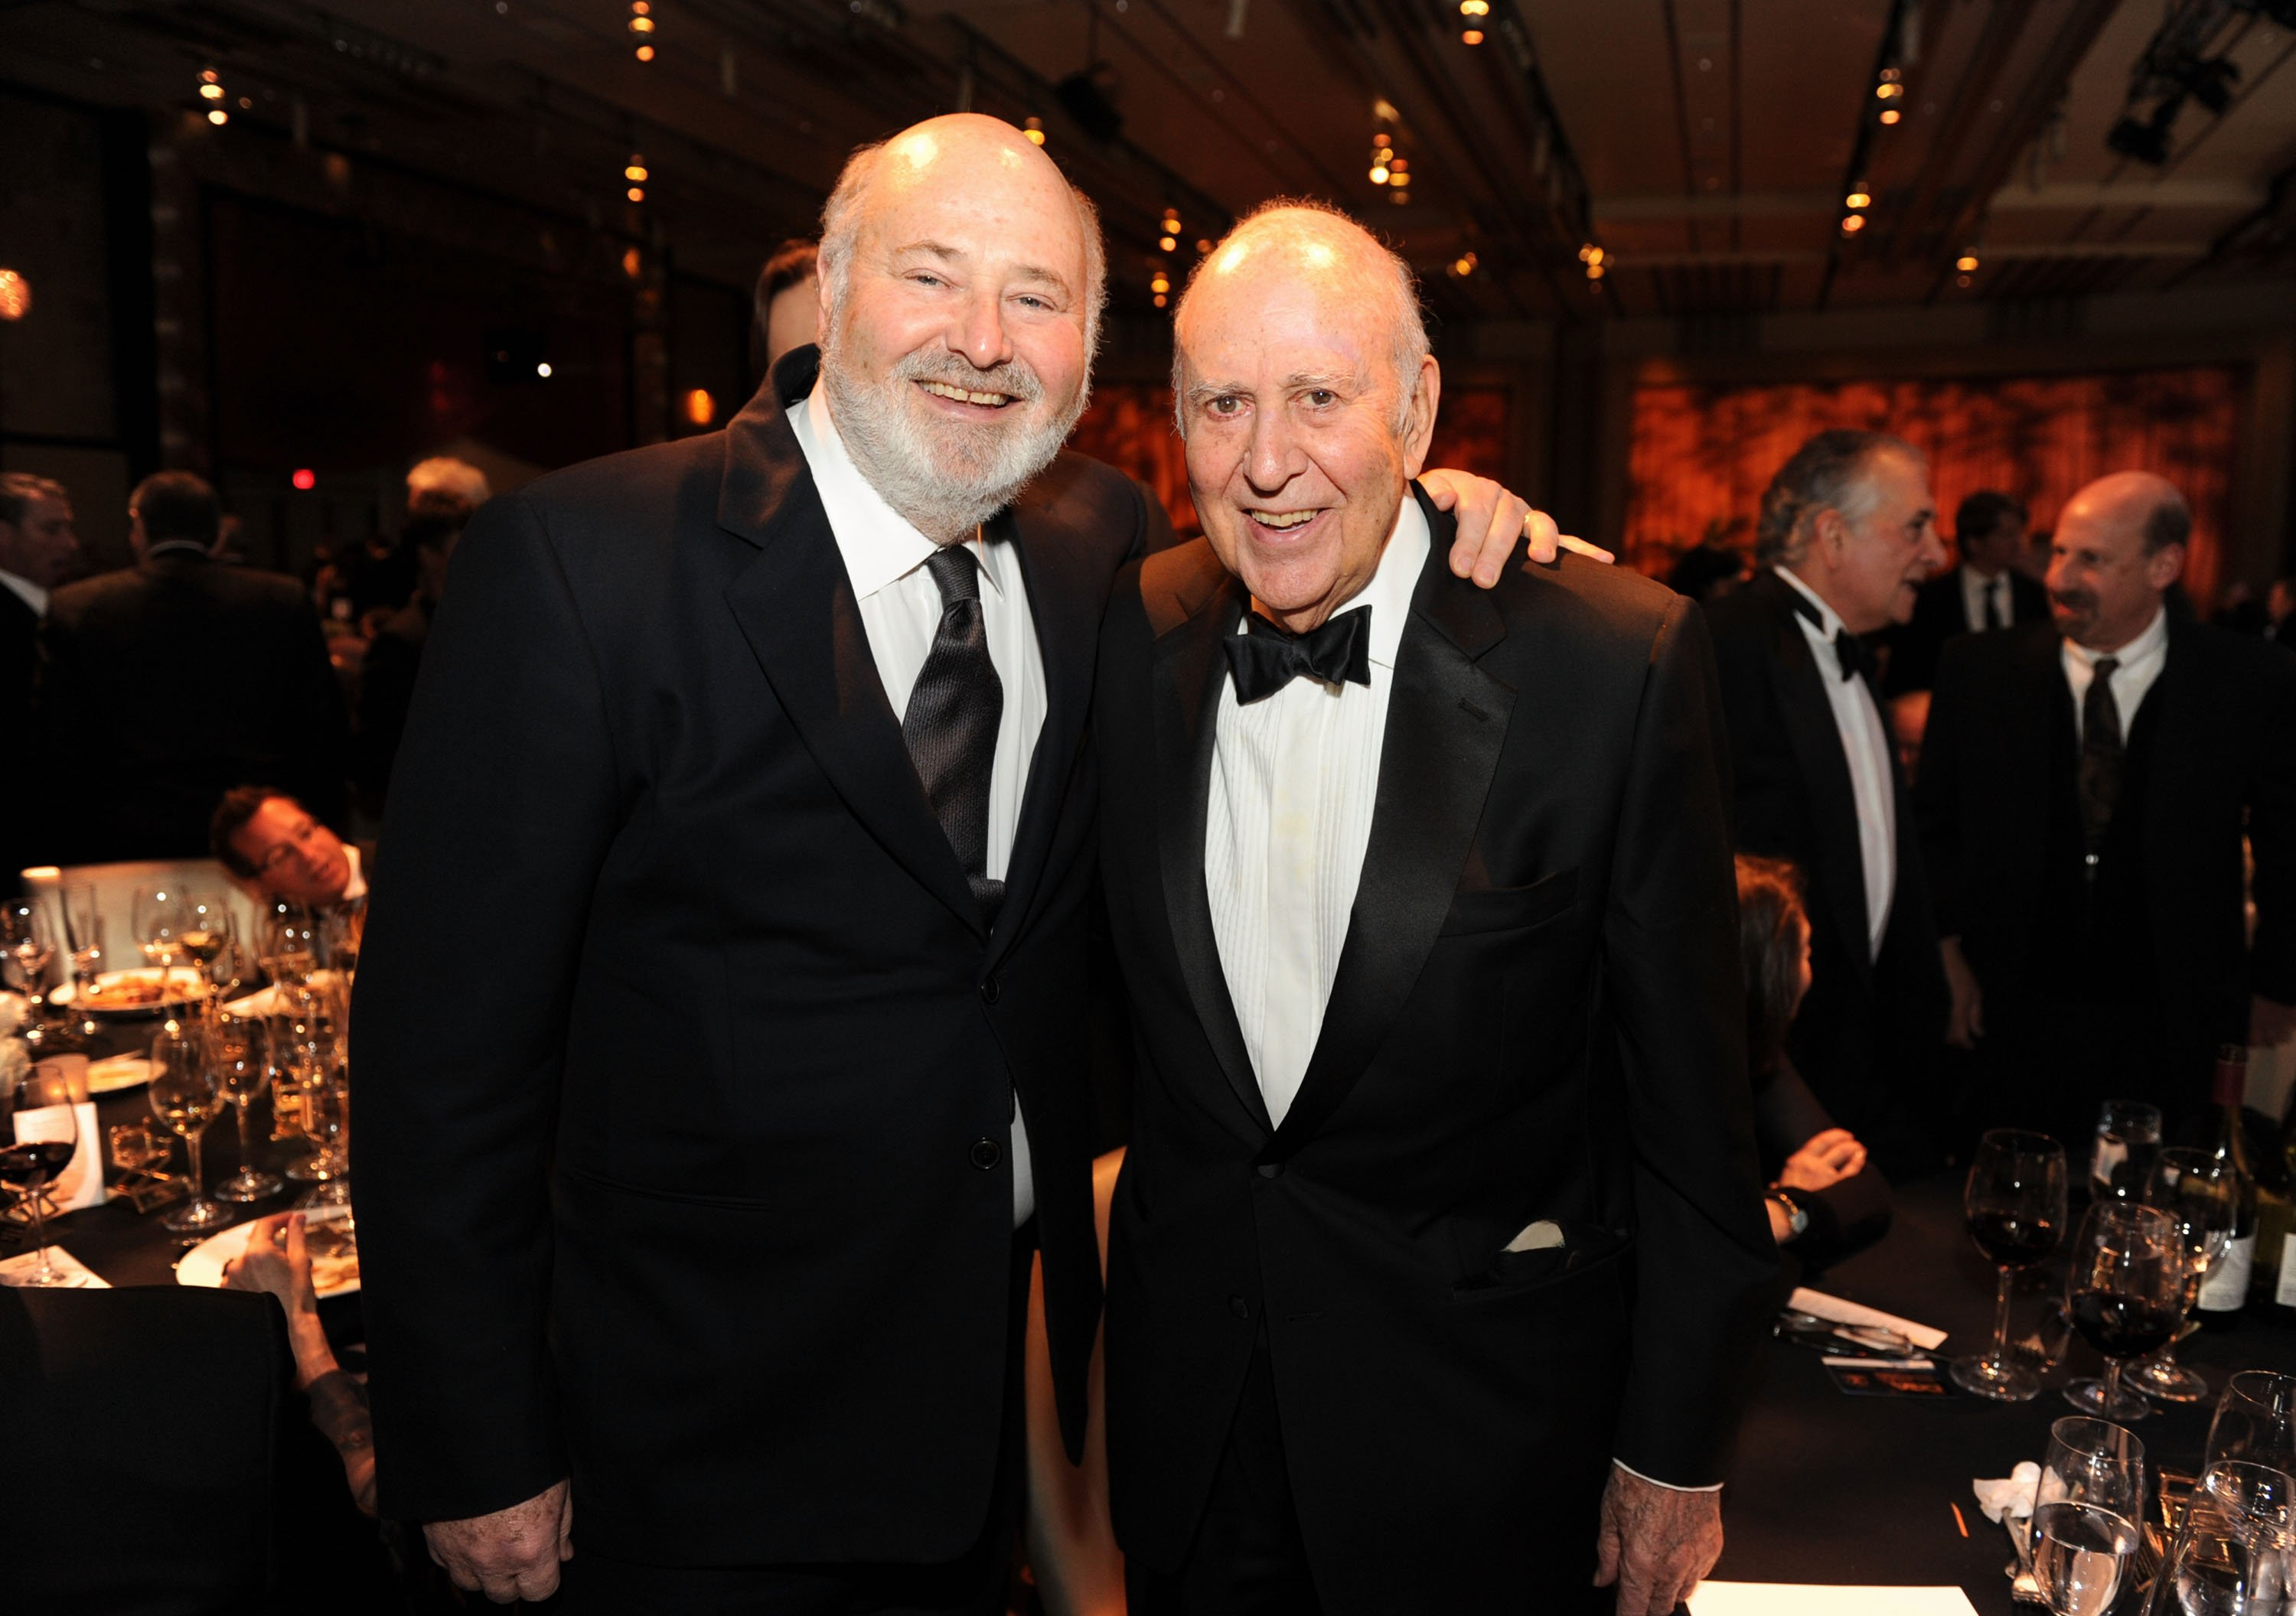 Rob Reiner and Master of Ceremonies Carl Reiner attend the 63rd Annual Directors Guild Of America Awards held at the Grand Ballroom at Hollywood & Highland on January 29, 2011 in Hollywood, California | Photo: Getty Images